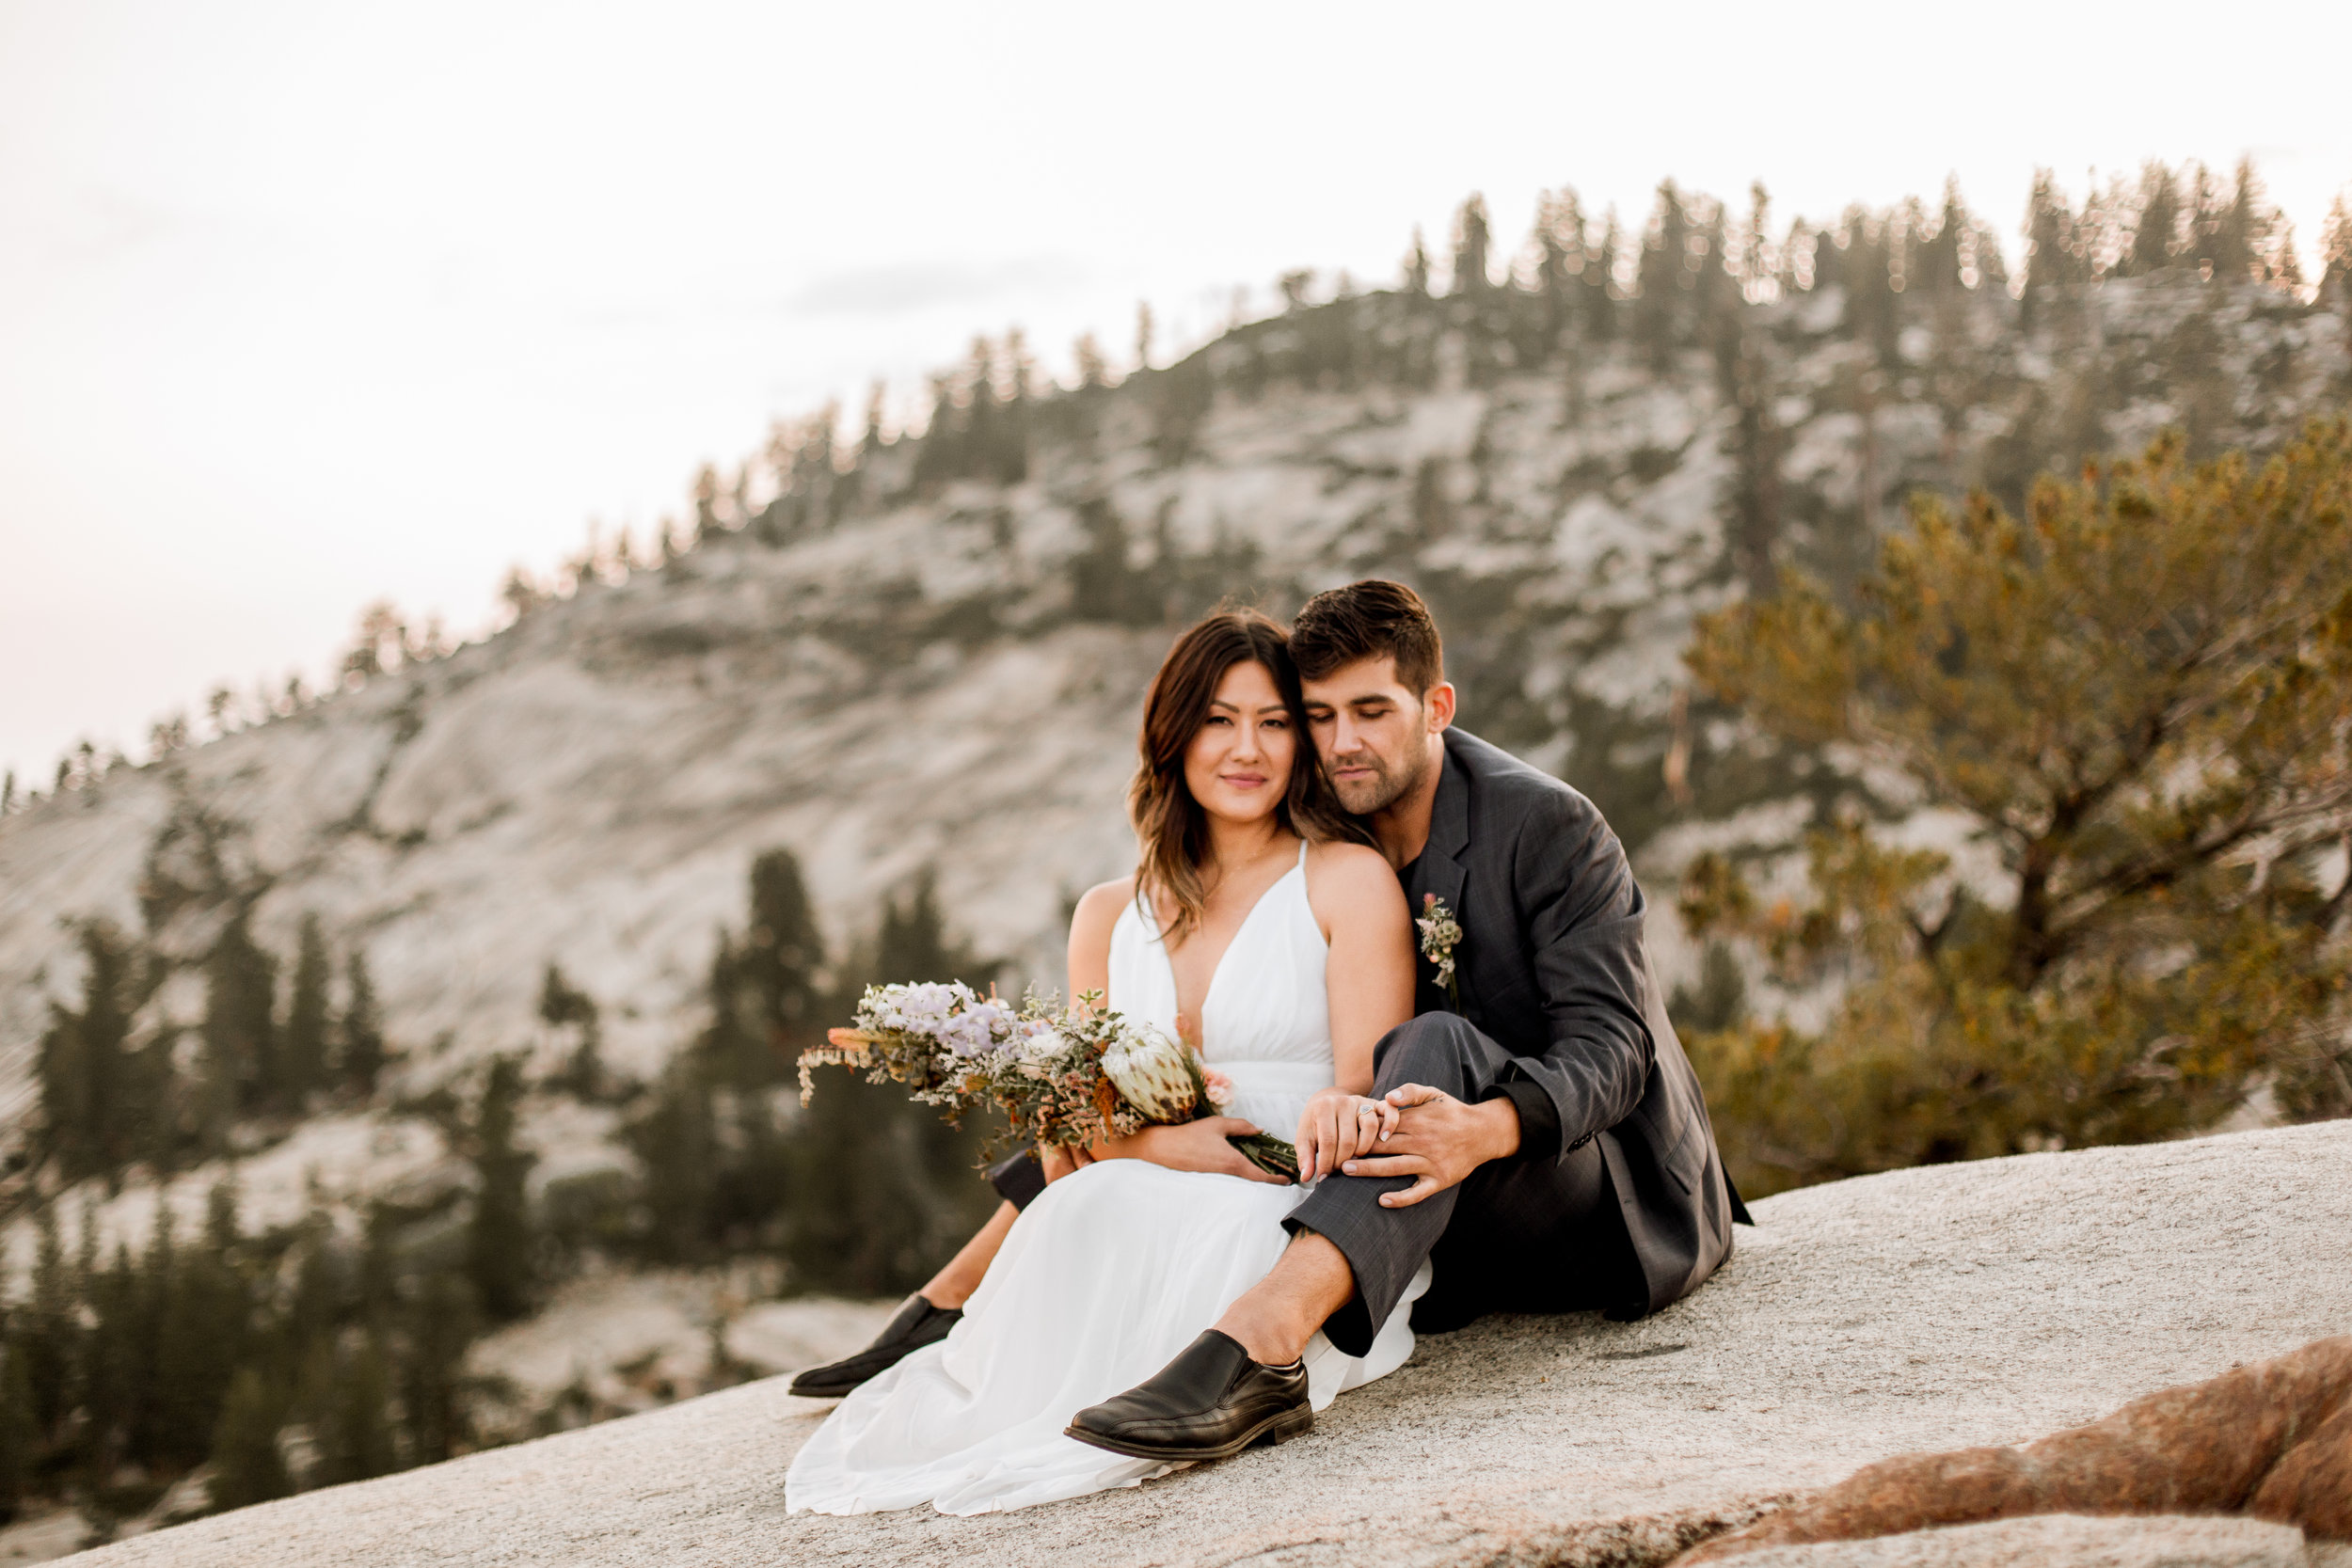 nicole-daacke-photography-yosemite-national-park-fall-elopement-adventurous-free-spirit-boho-bohemian-elopement-olmsted-point-yosemite-california-elope-adventure-elopement-photographer-57.jpg